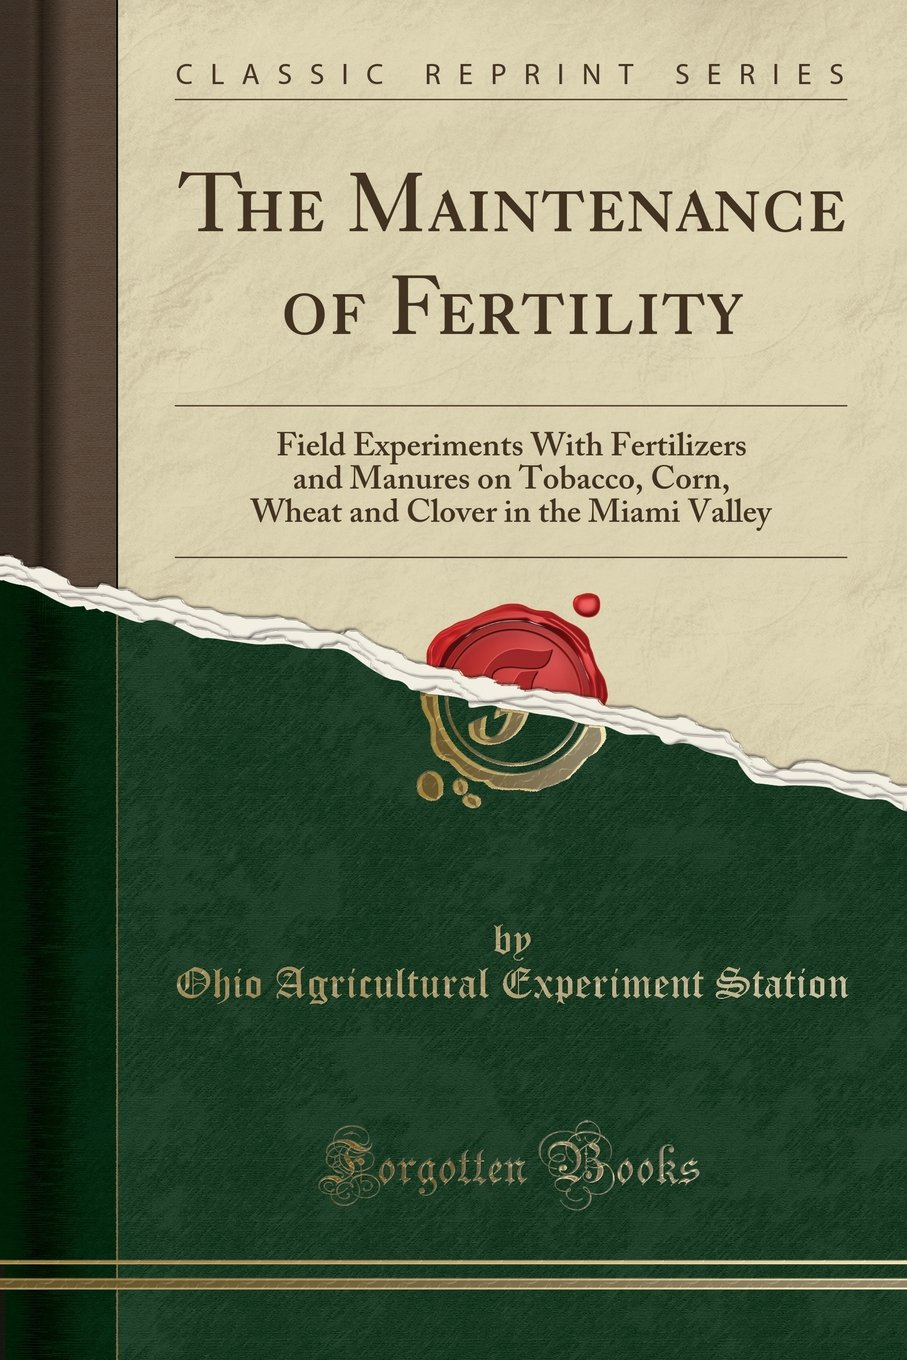 Download The Maintenance of Fertility: Field Experiments With Fertilizers and Manures on Tobacco, Corn, Wheat and Clover in the Miami Valley (Classic Reprint) ebook